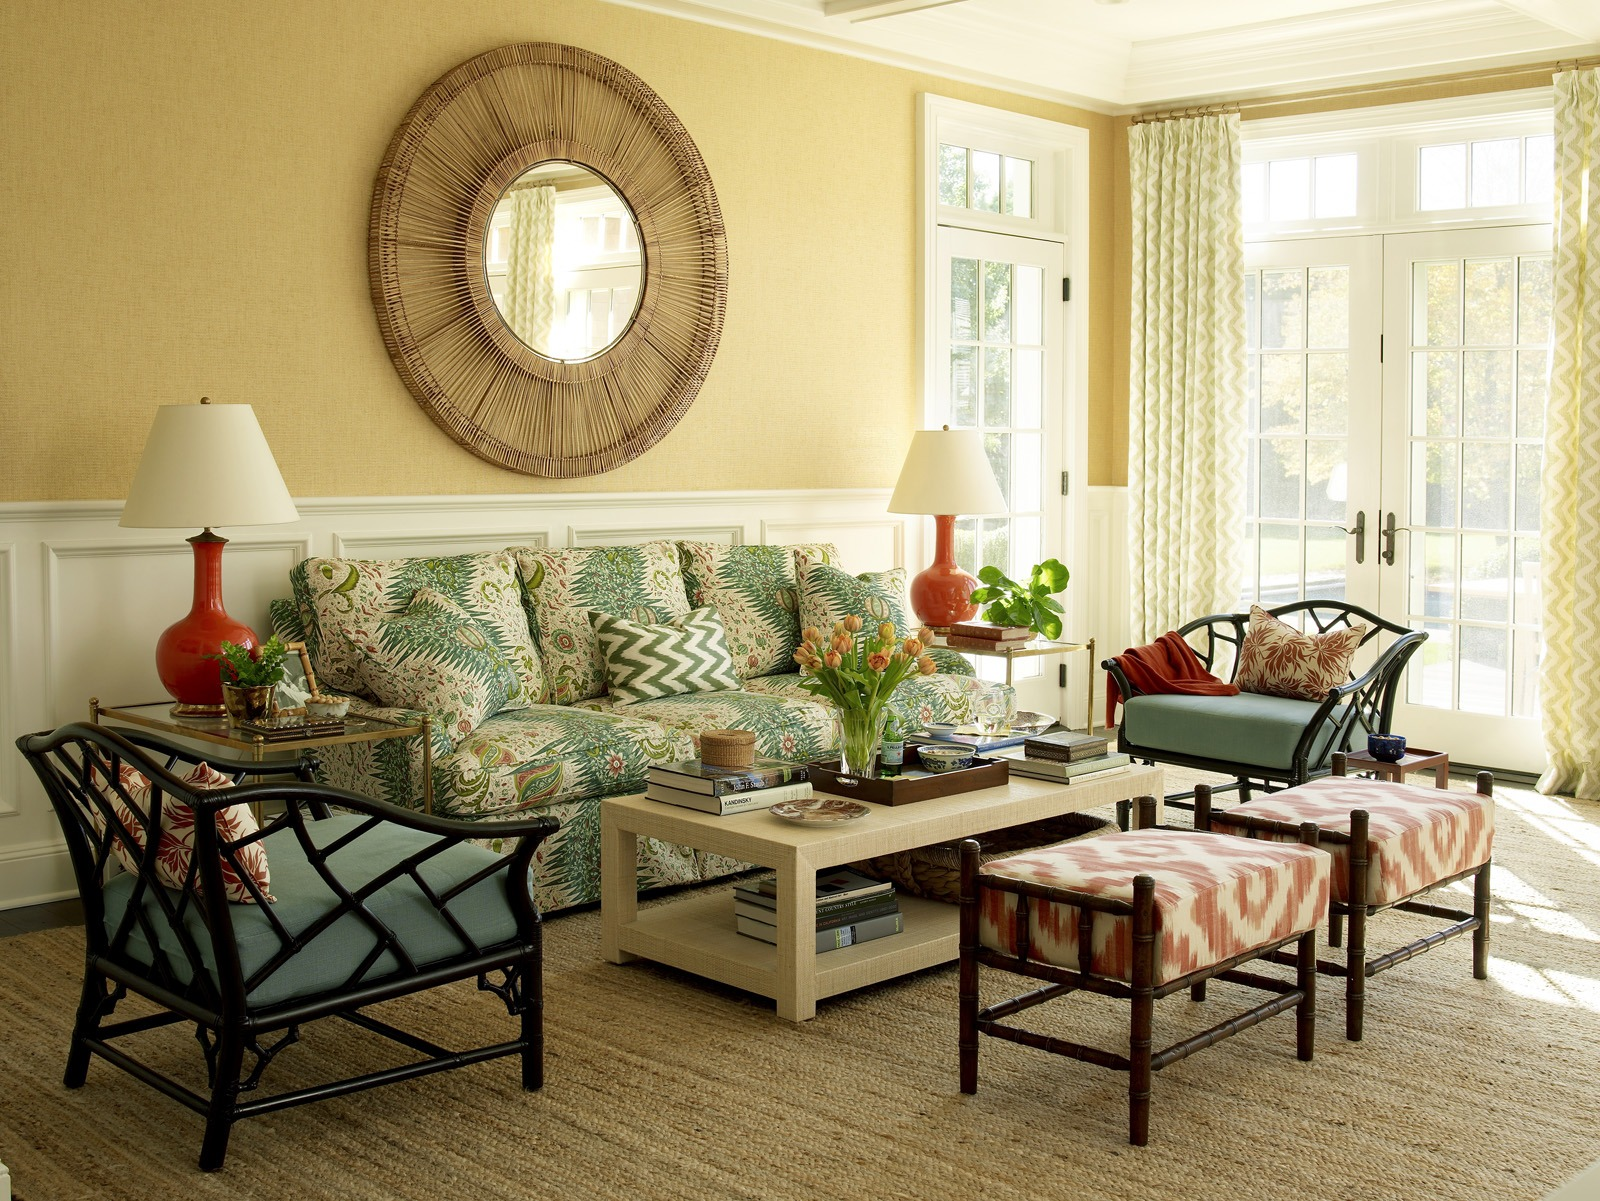 Meg Braff Designs Southampton home family room